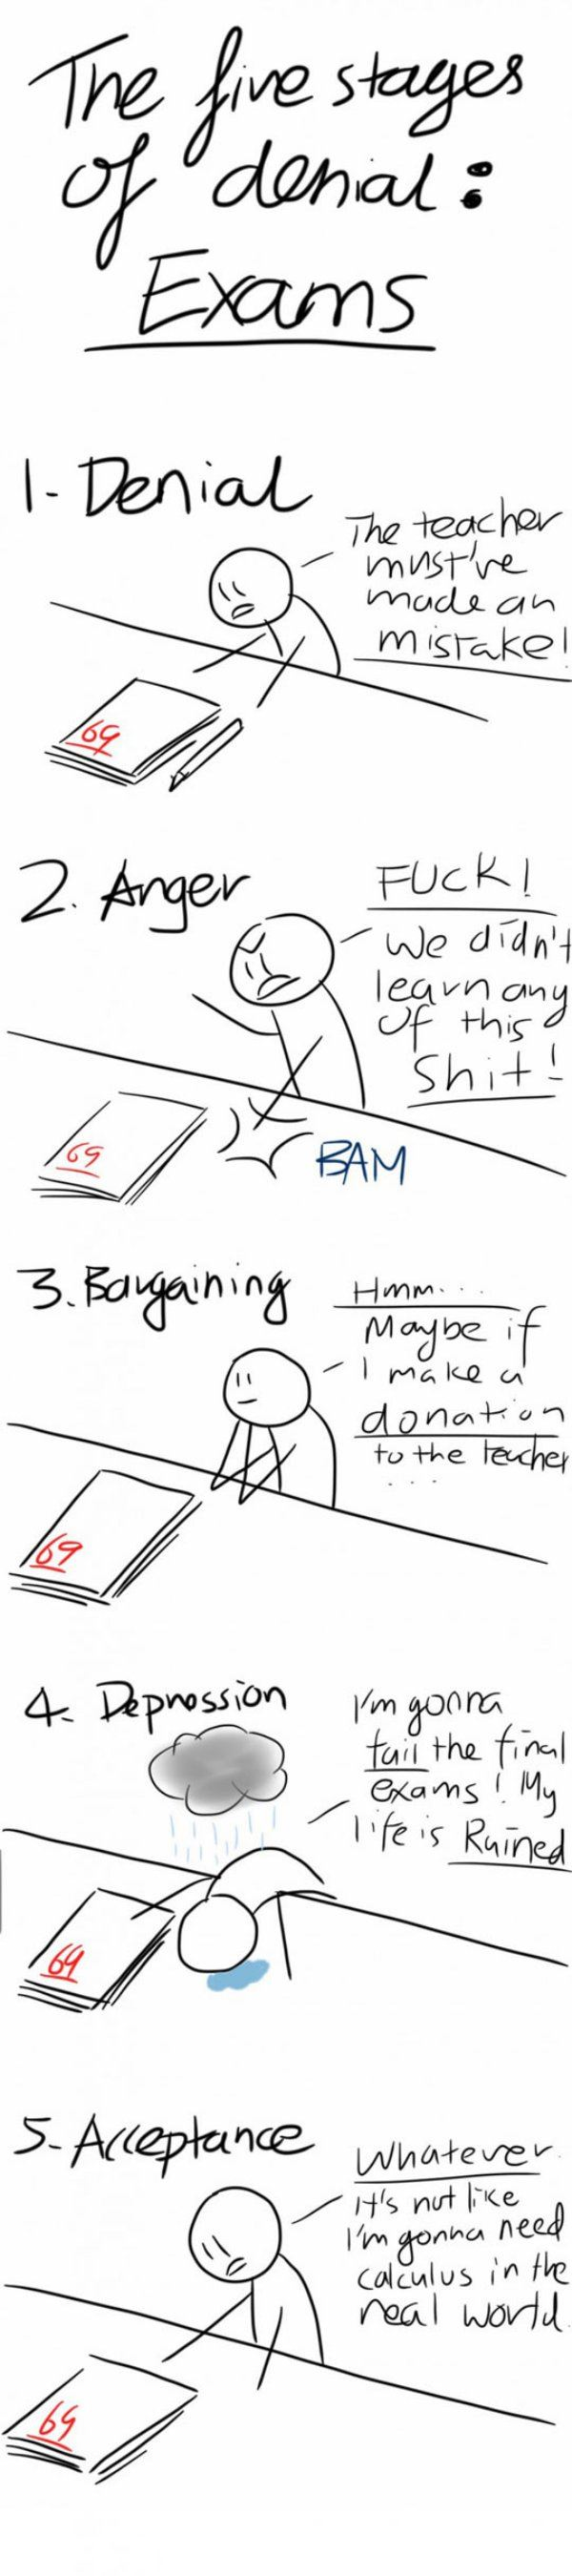 The 5 stages of denial